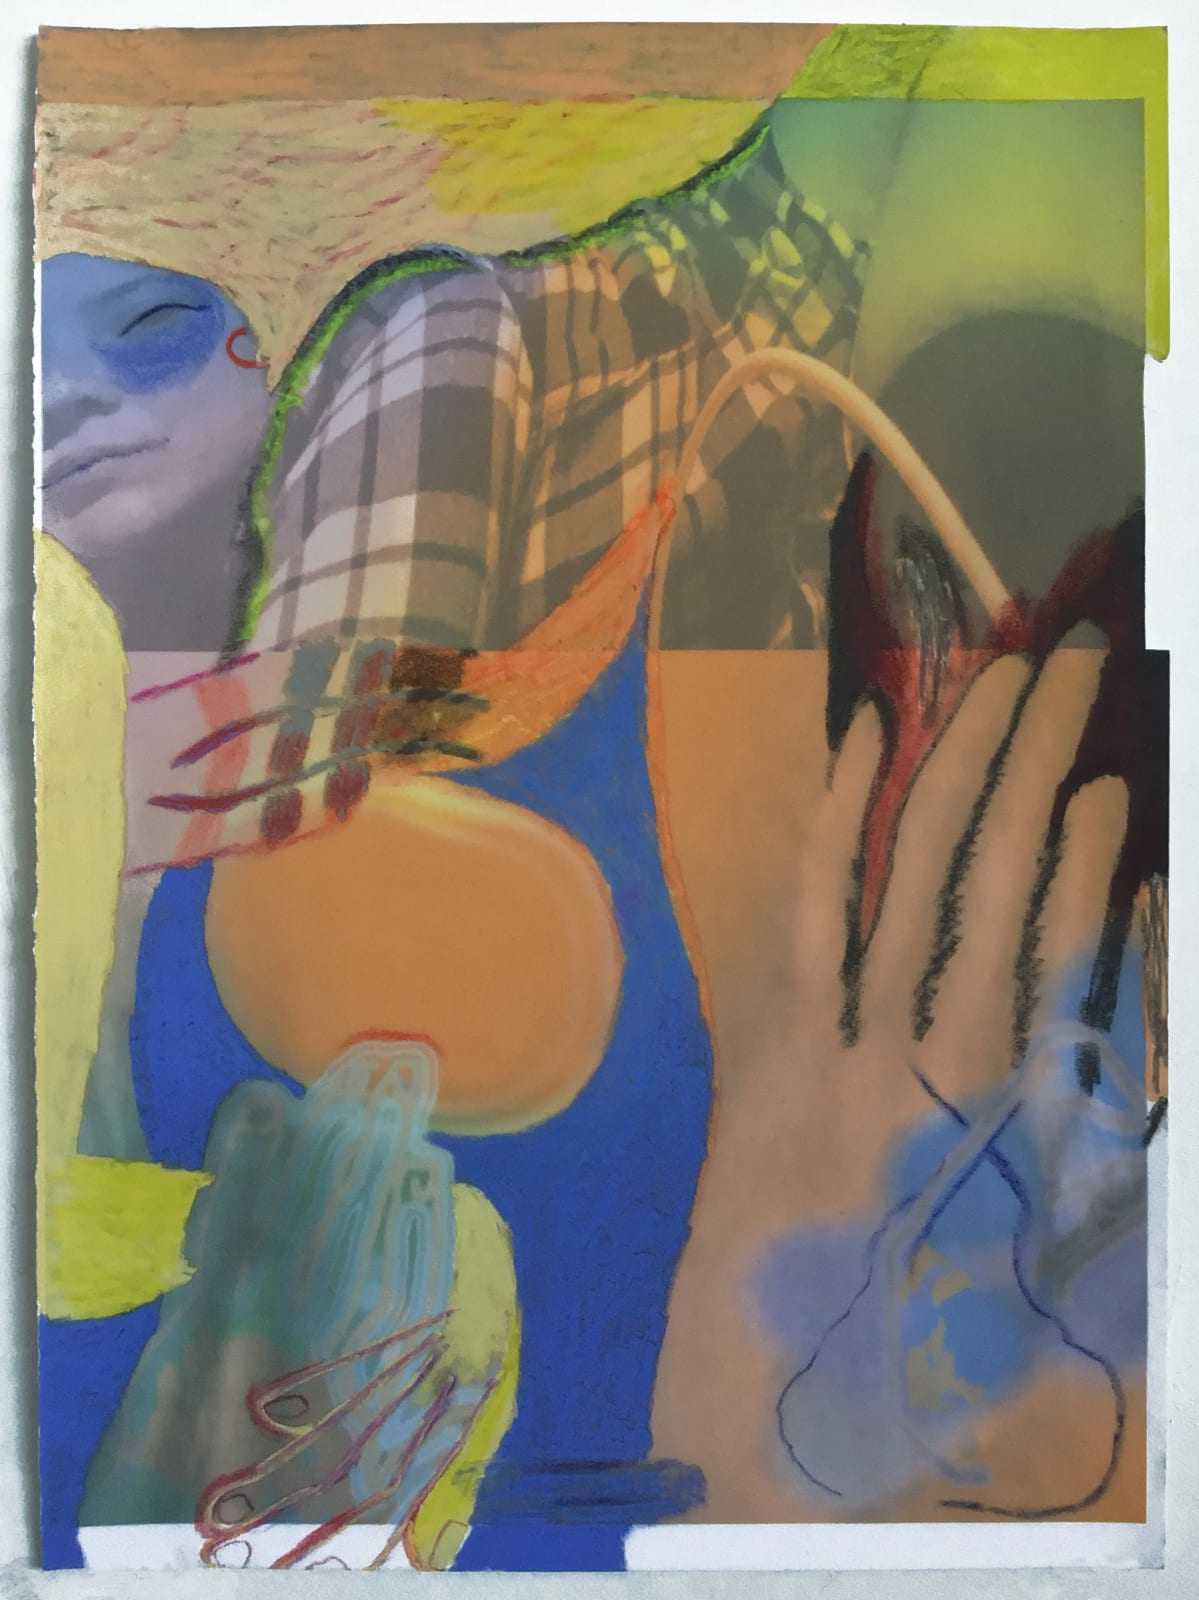 Gaby Collins-Fernandez One Plaid Eroticism, 2020 Crayons and digital photocollage on flocked paper 19 x 13.5 in 48.3 x 34.3 cm